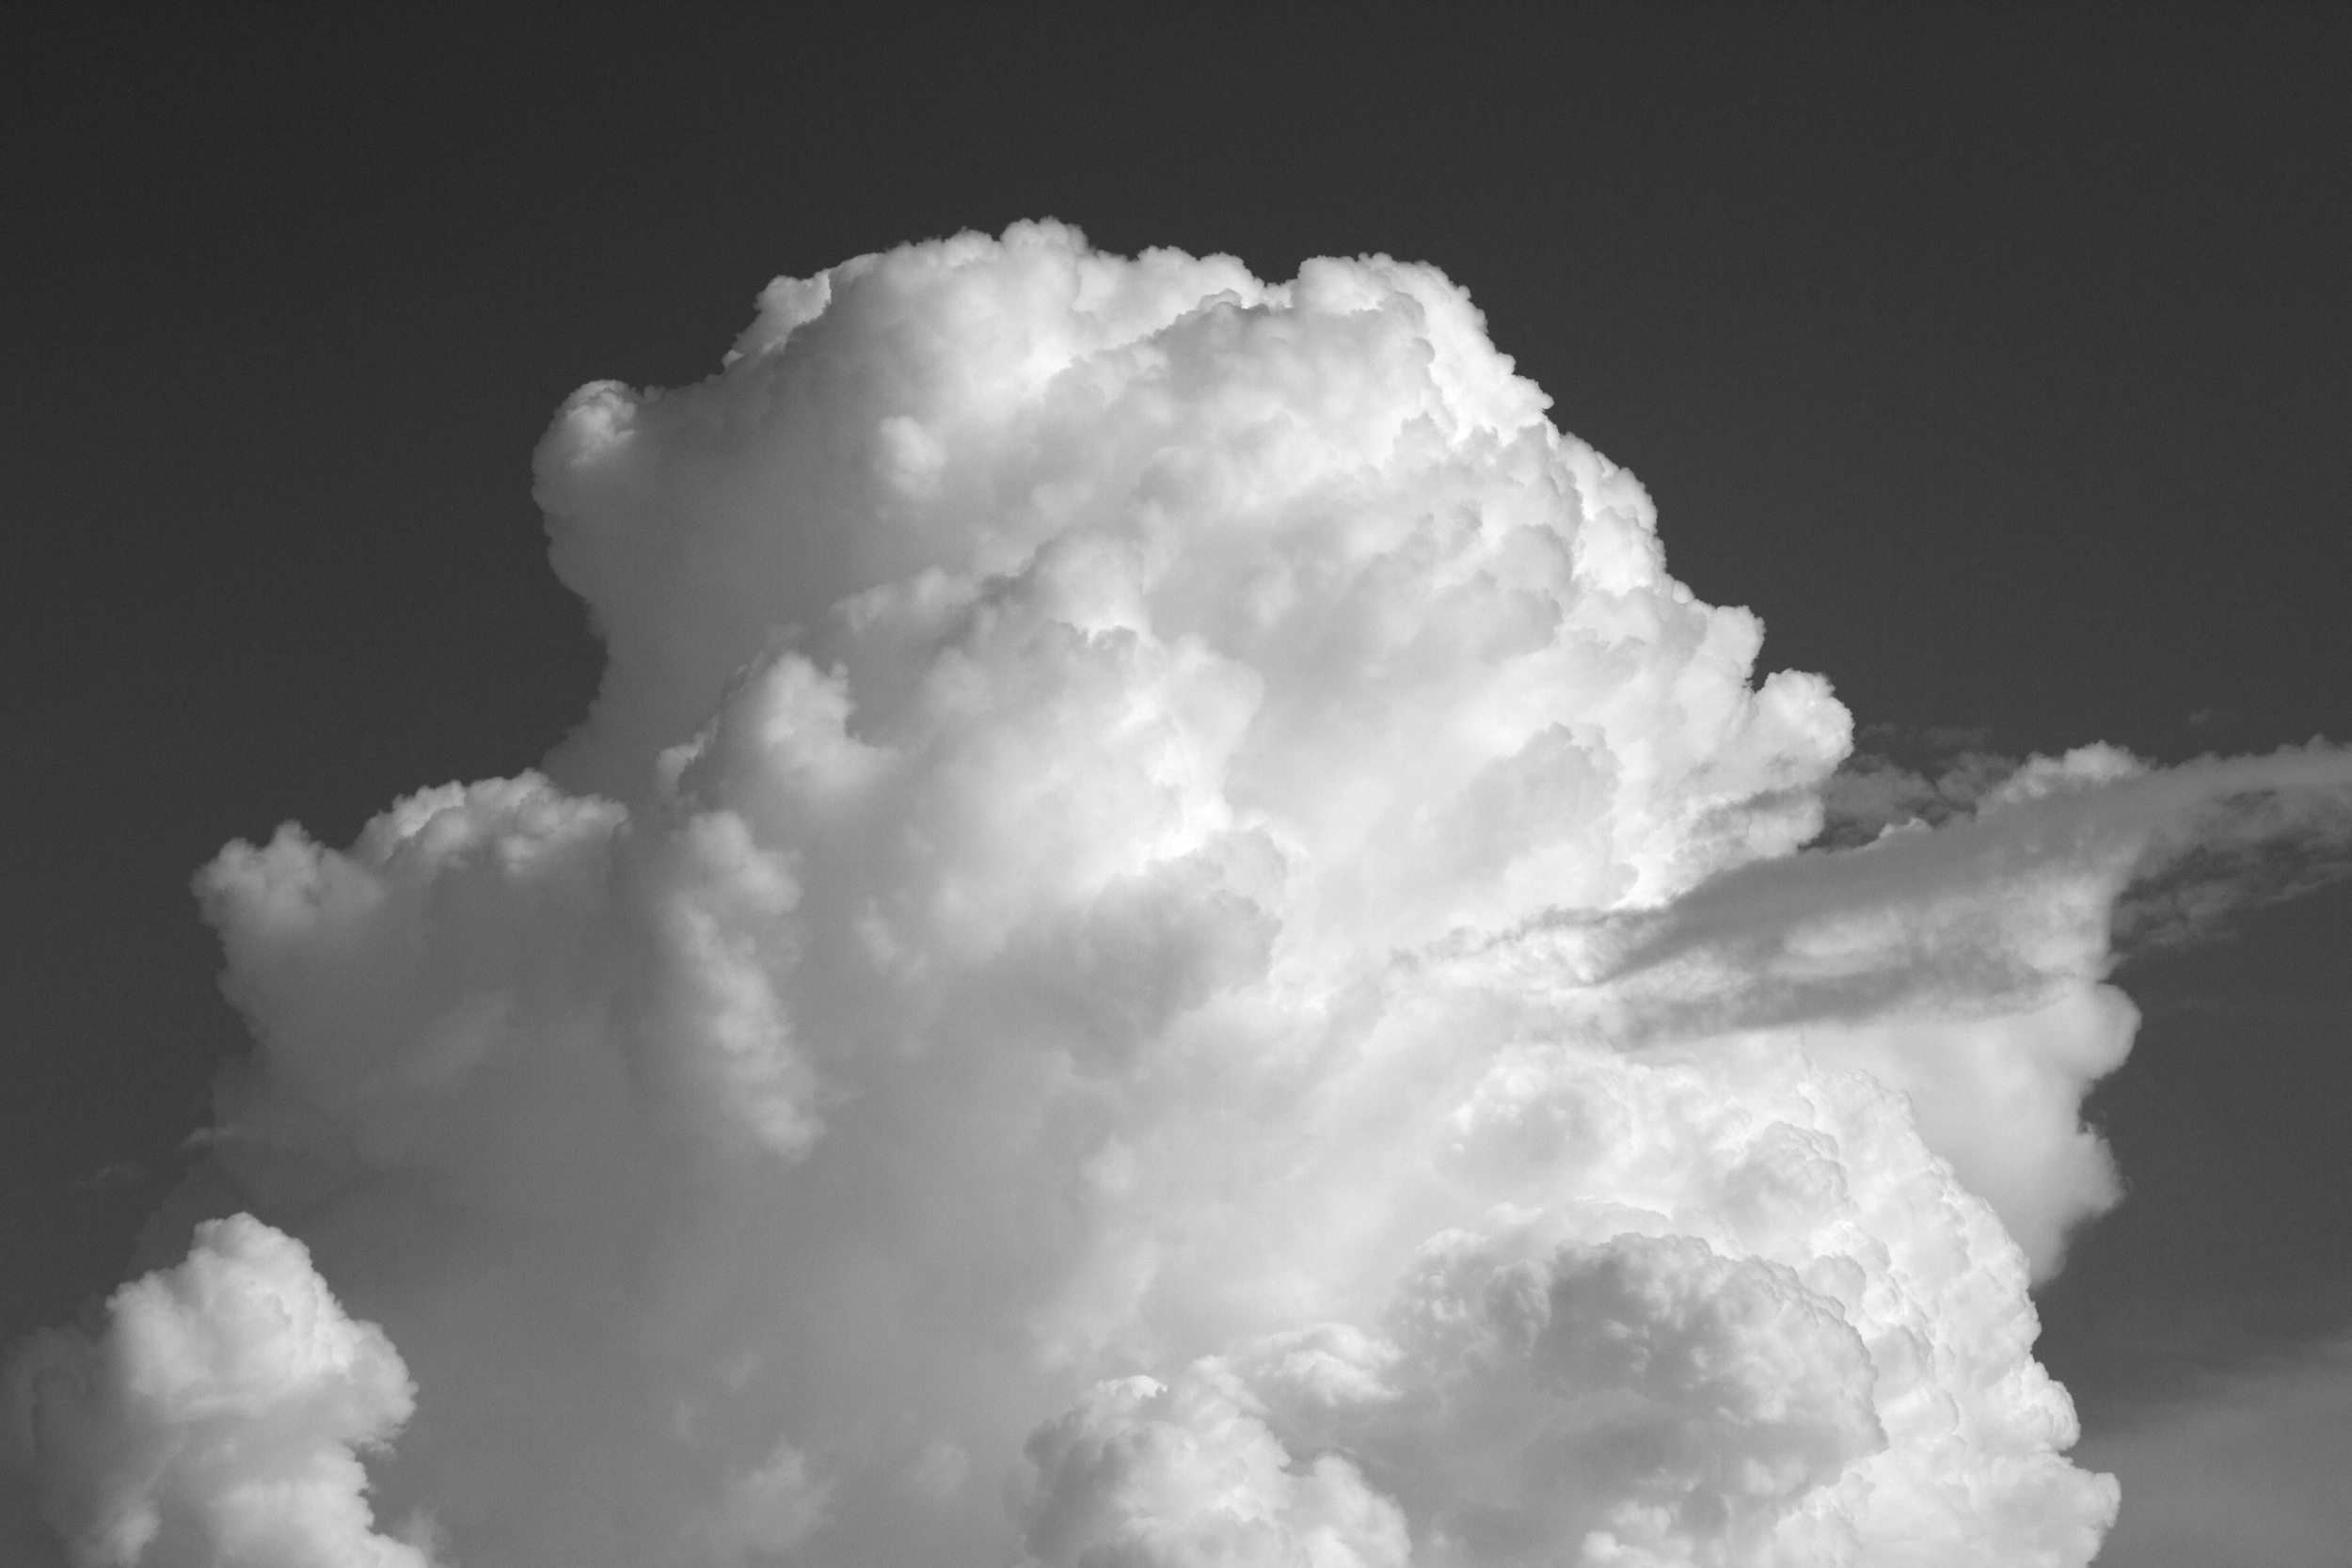 Billowing clouds in Black and White, frozen in time it seems.